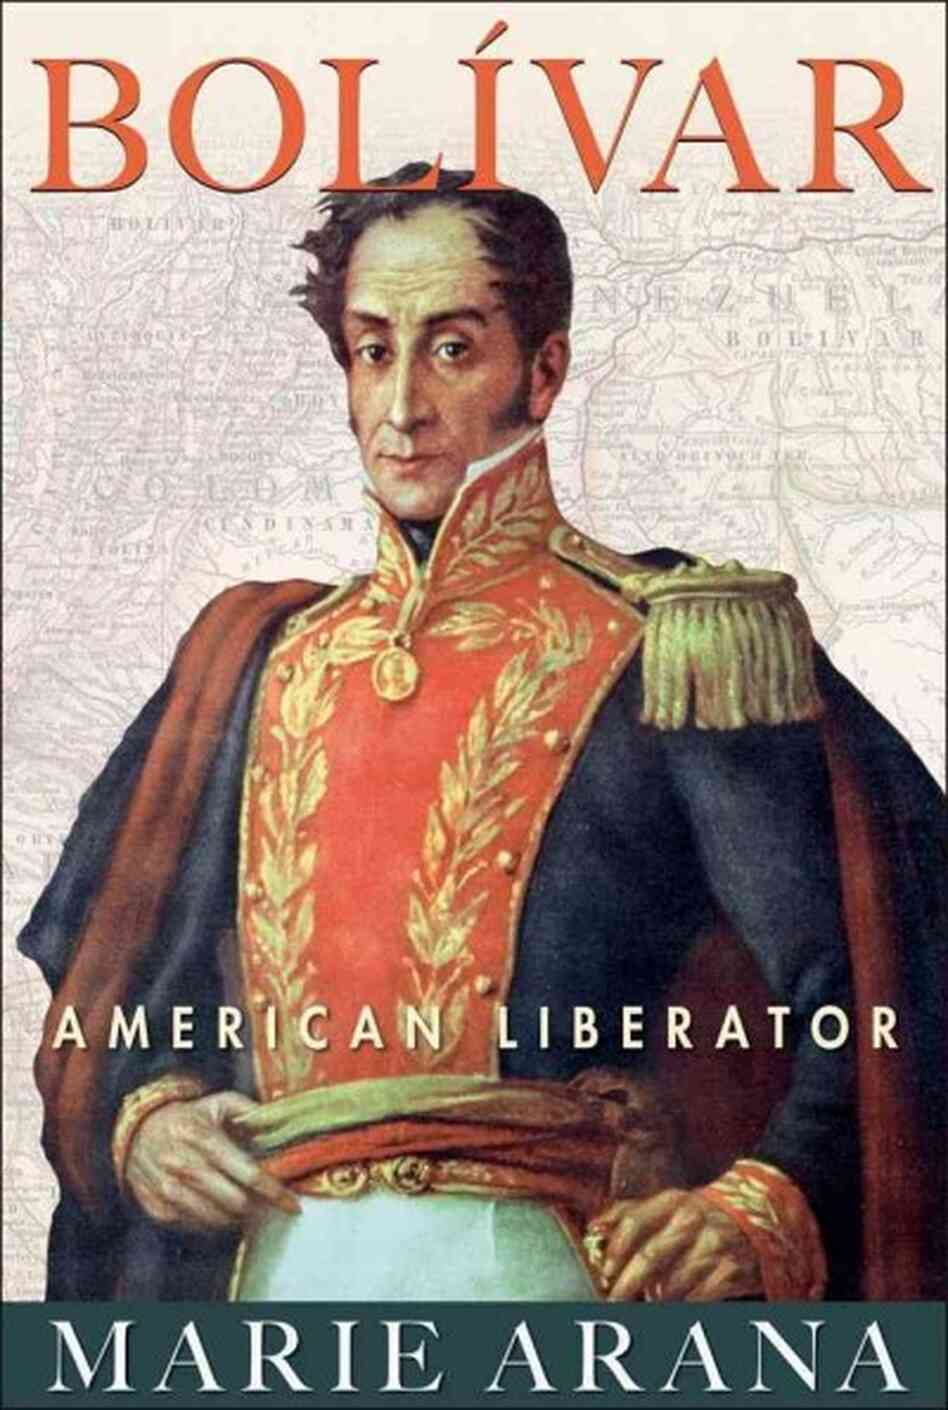 Simon bolivar the liberator essay